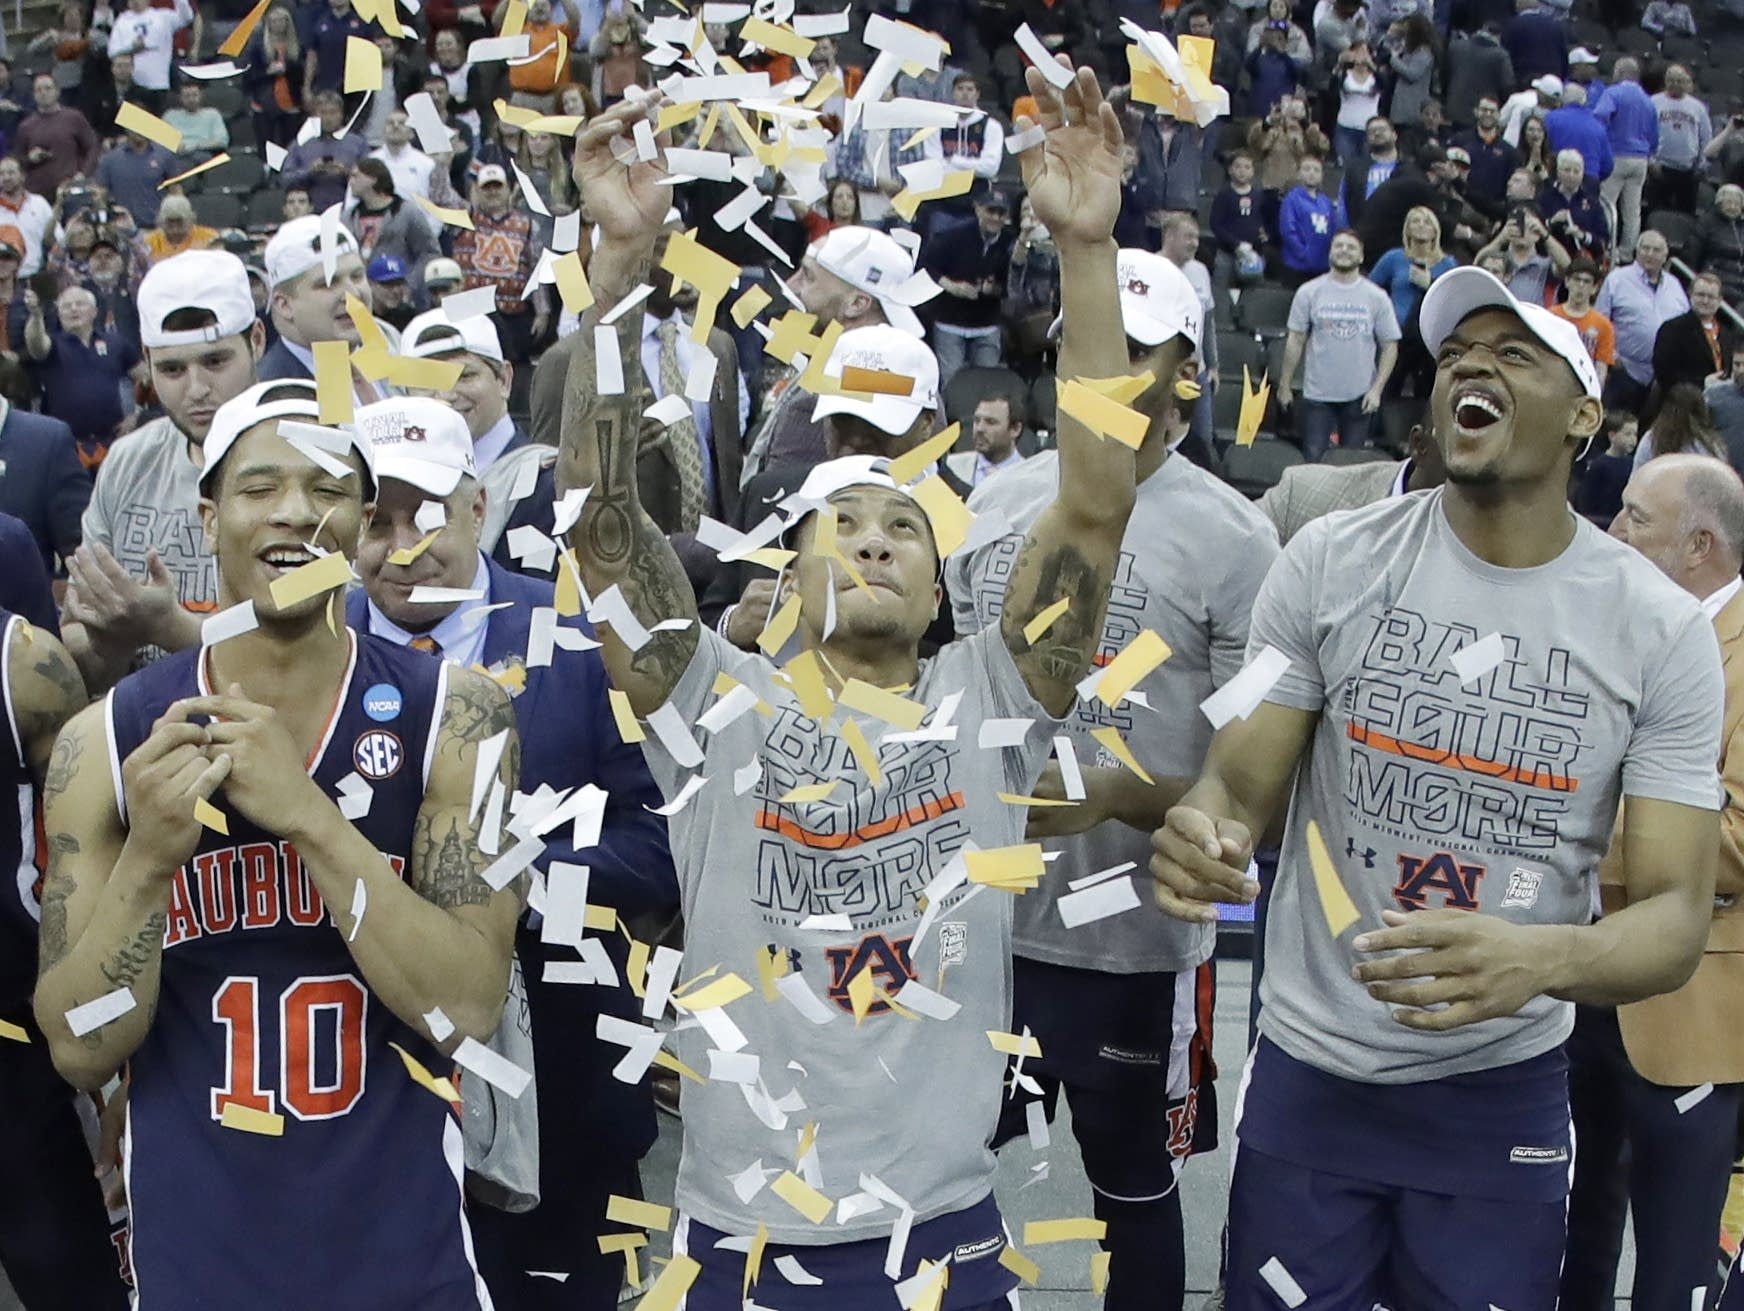 Auburn players celebrate after the Midwest Regional final game